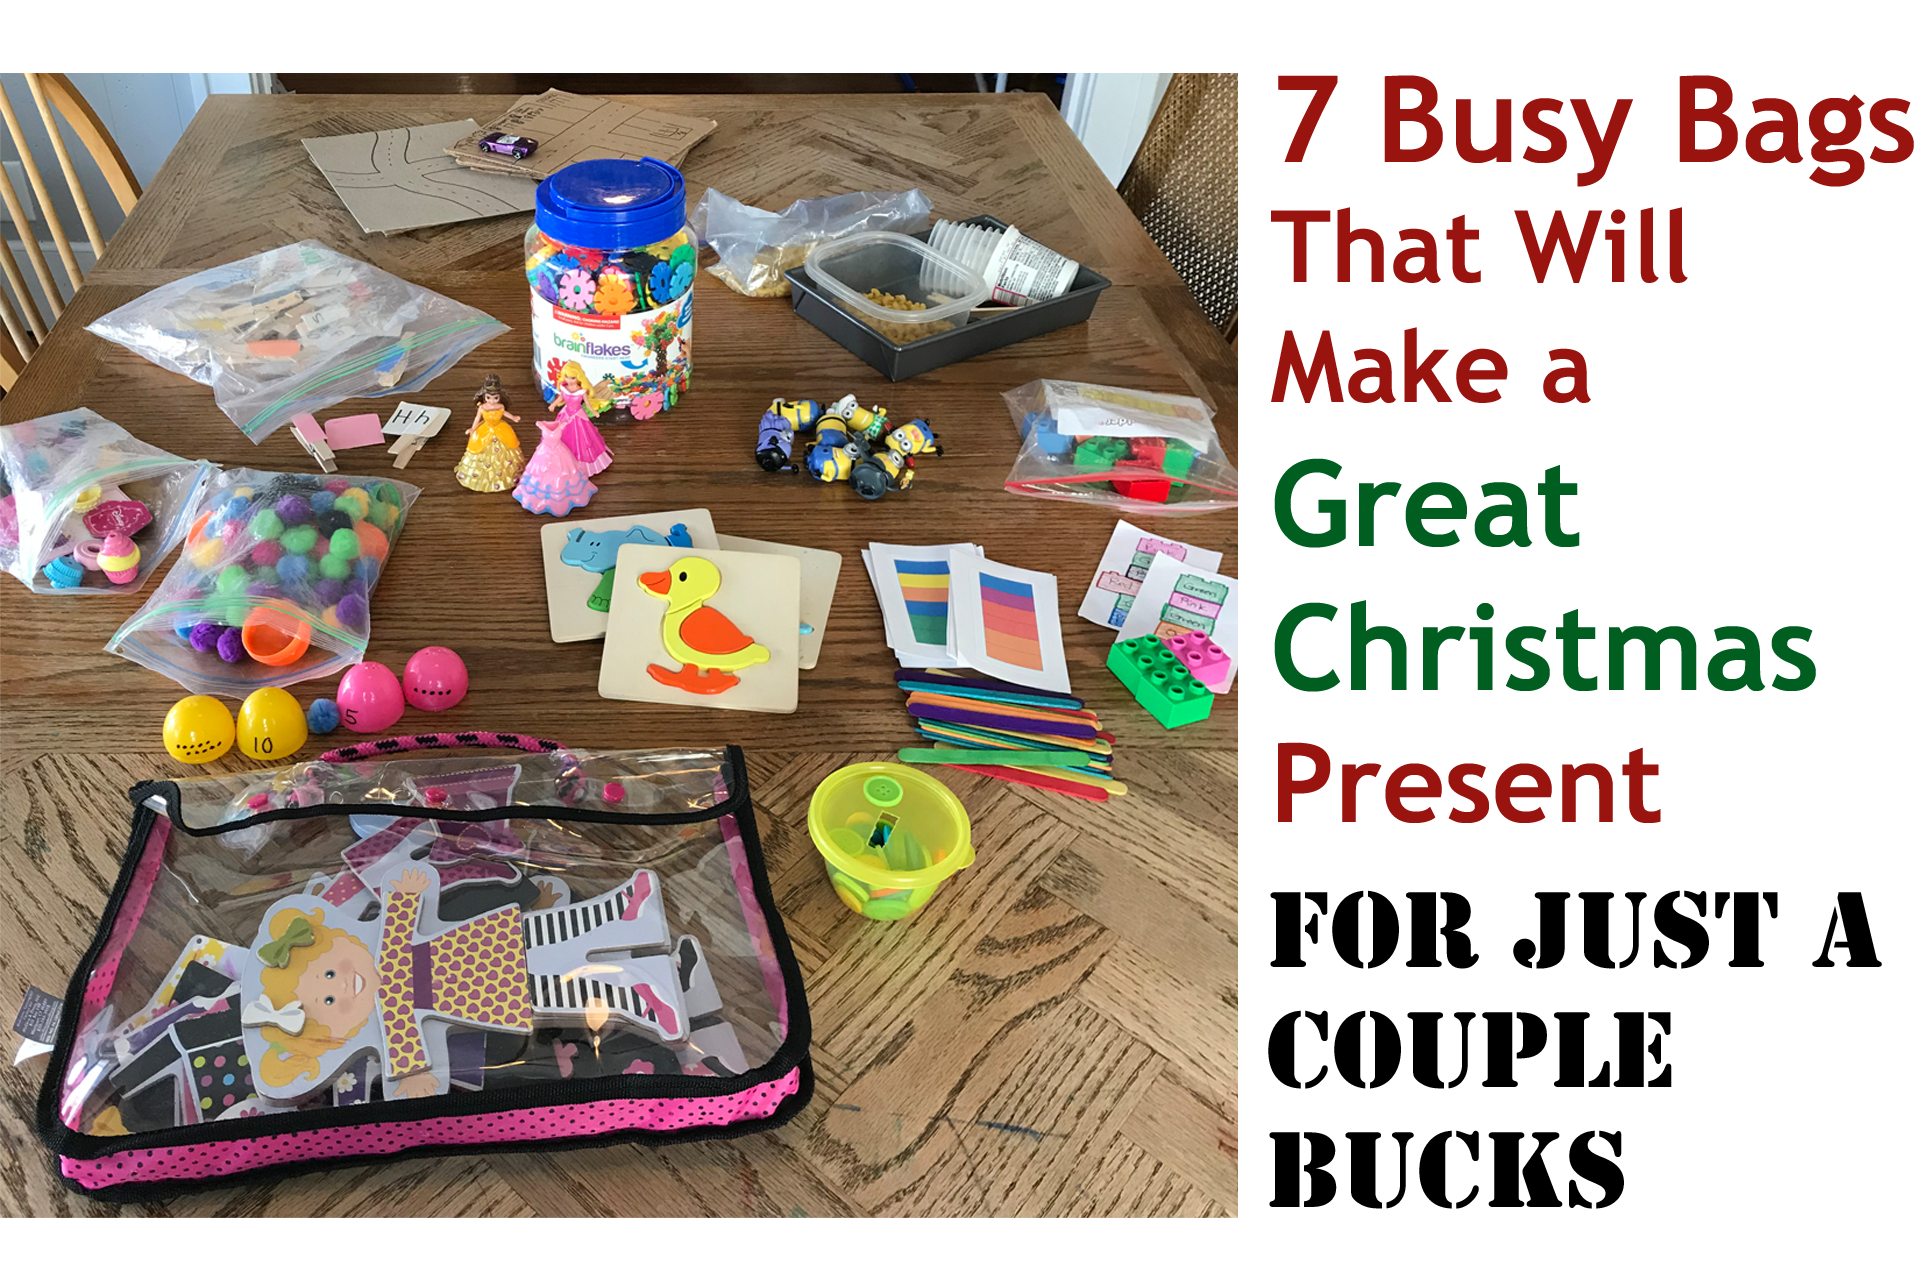 7 Busy Bags That Will Make a Great Christmas Present For Just a Couple Bucks